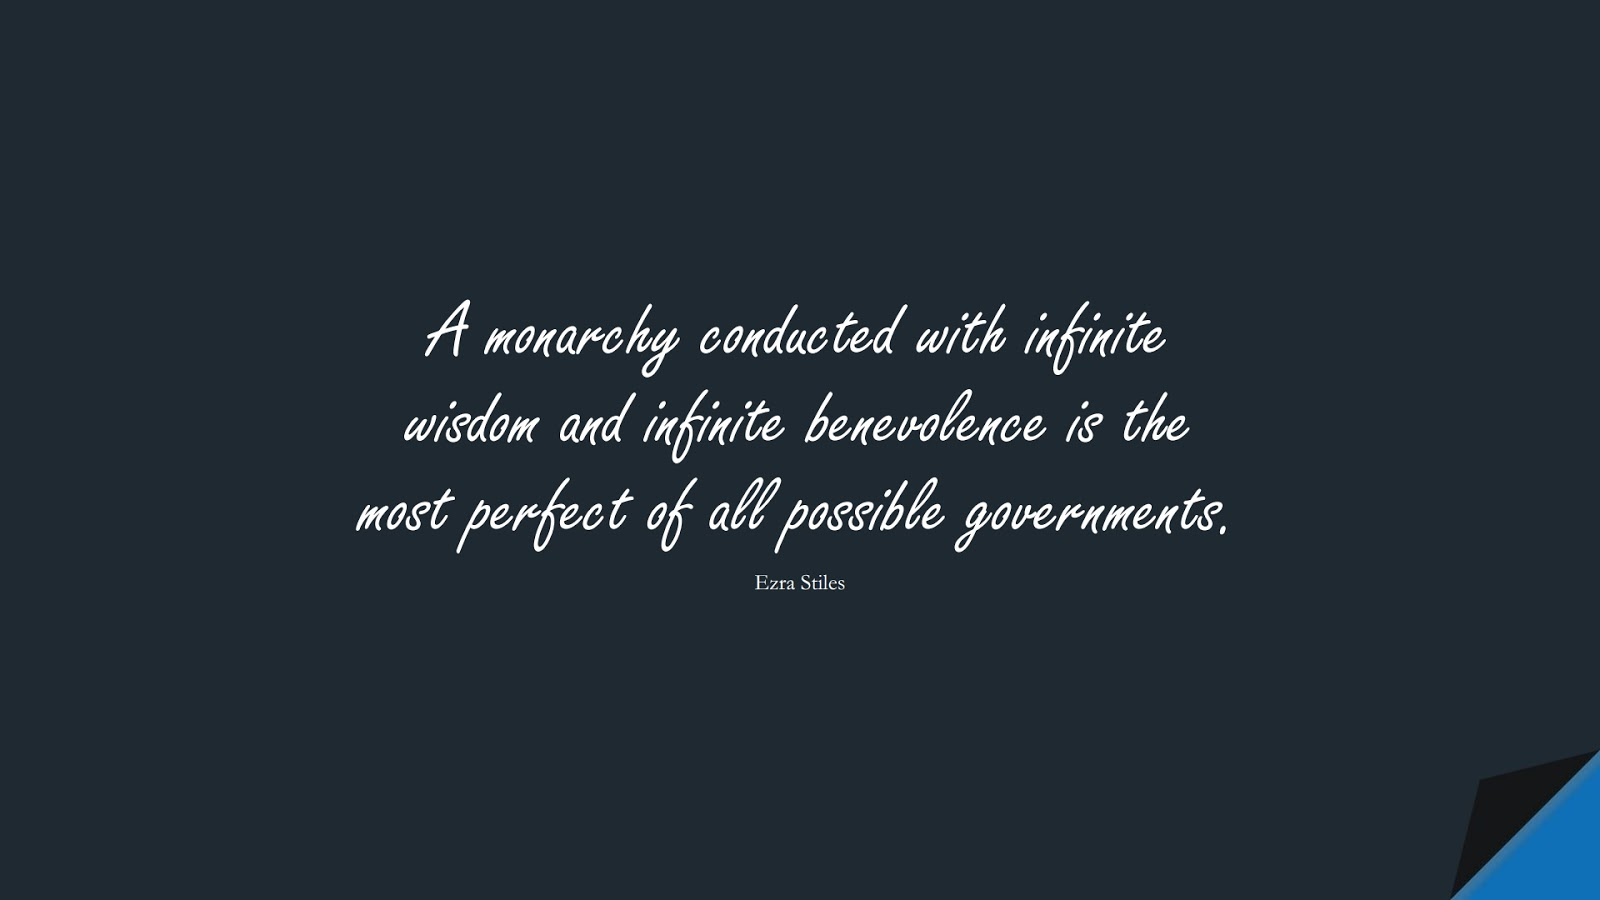 A monarchy conducted with infinite wisdom and infinite benevolence is the most perfect of all possible governments. (Ezra Stiles);  #WordsofWisdom